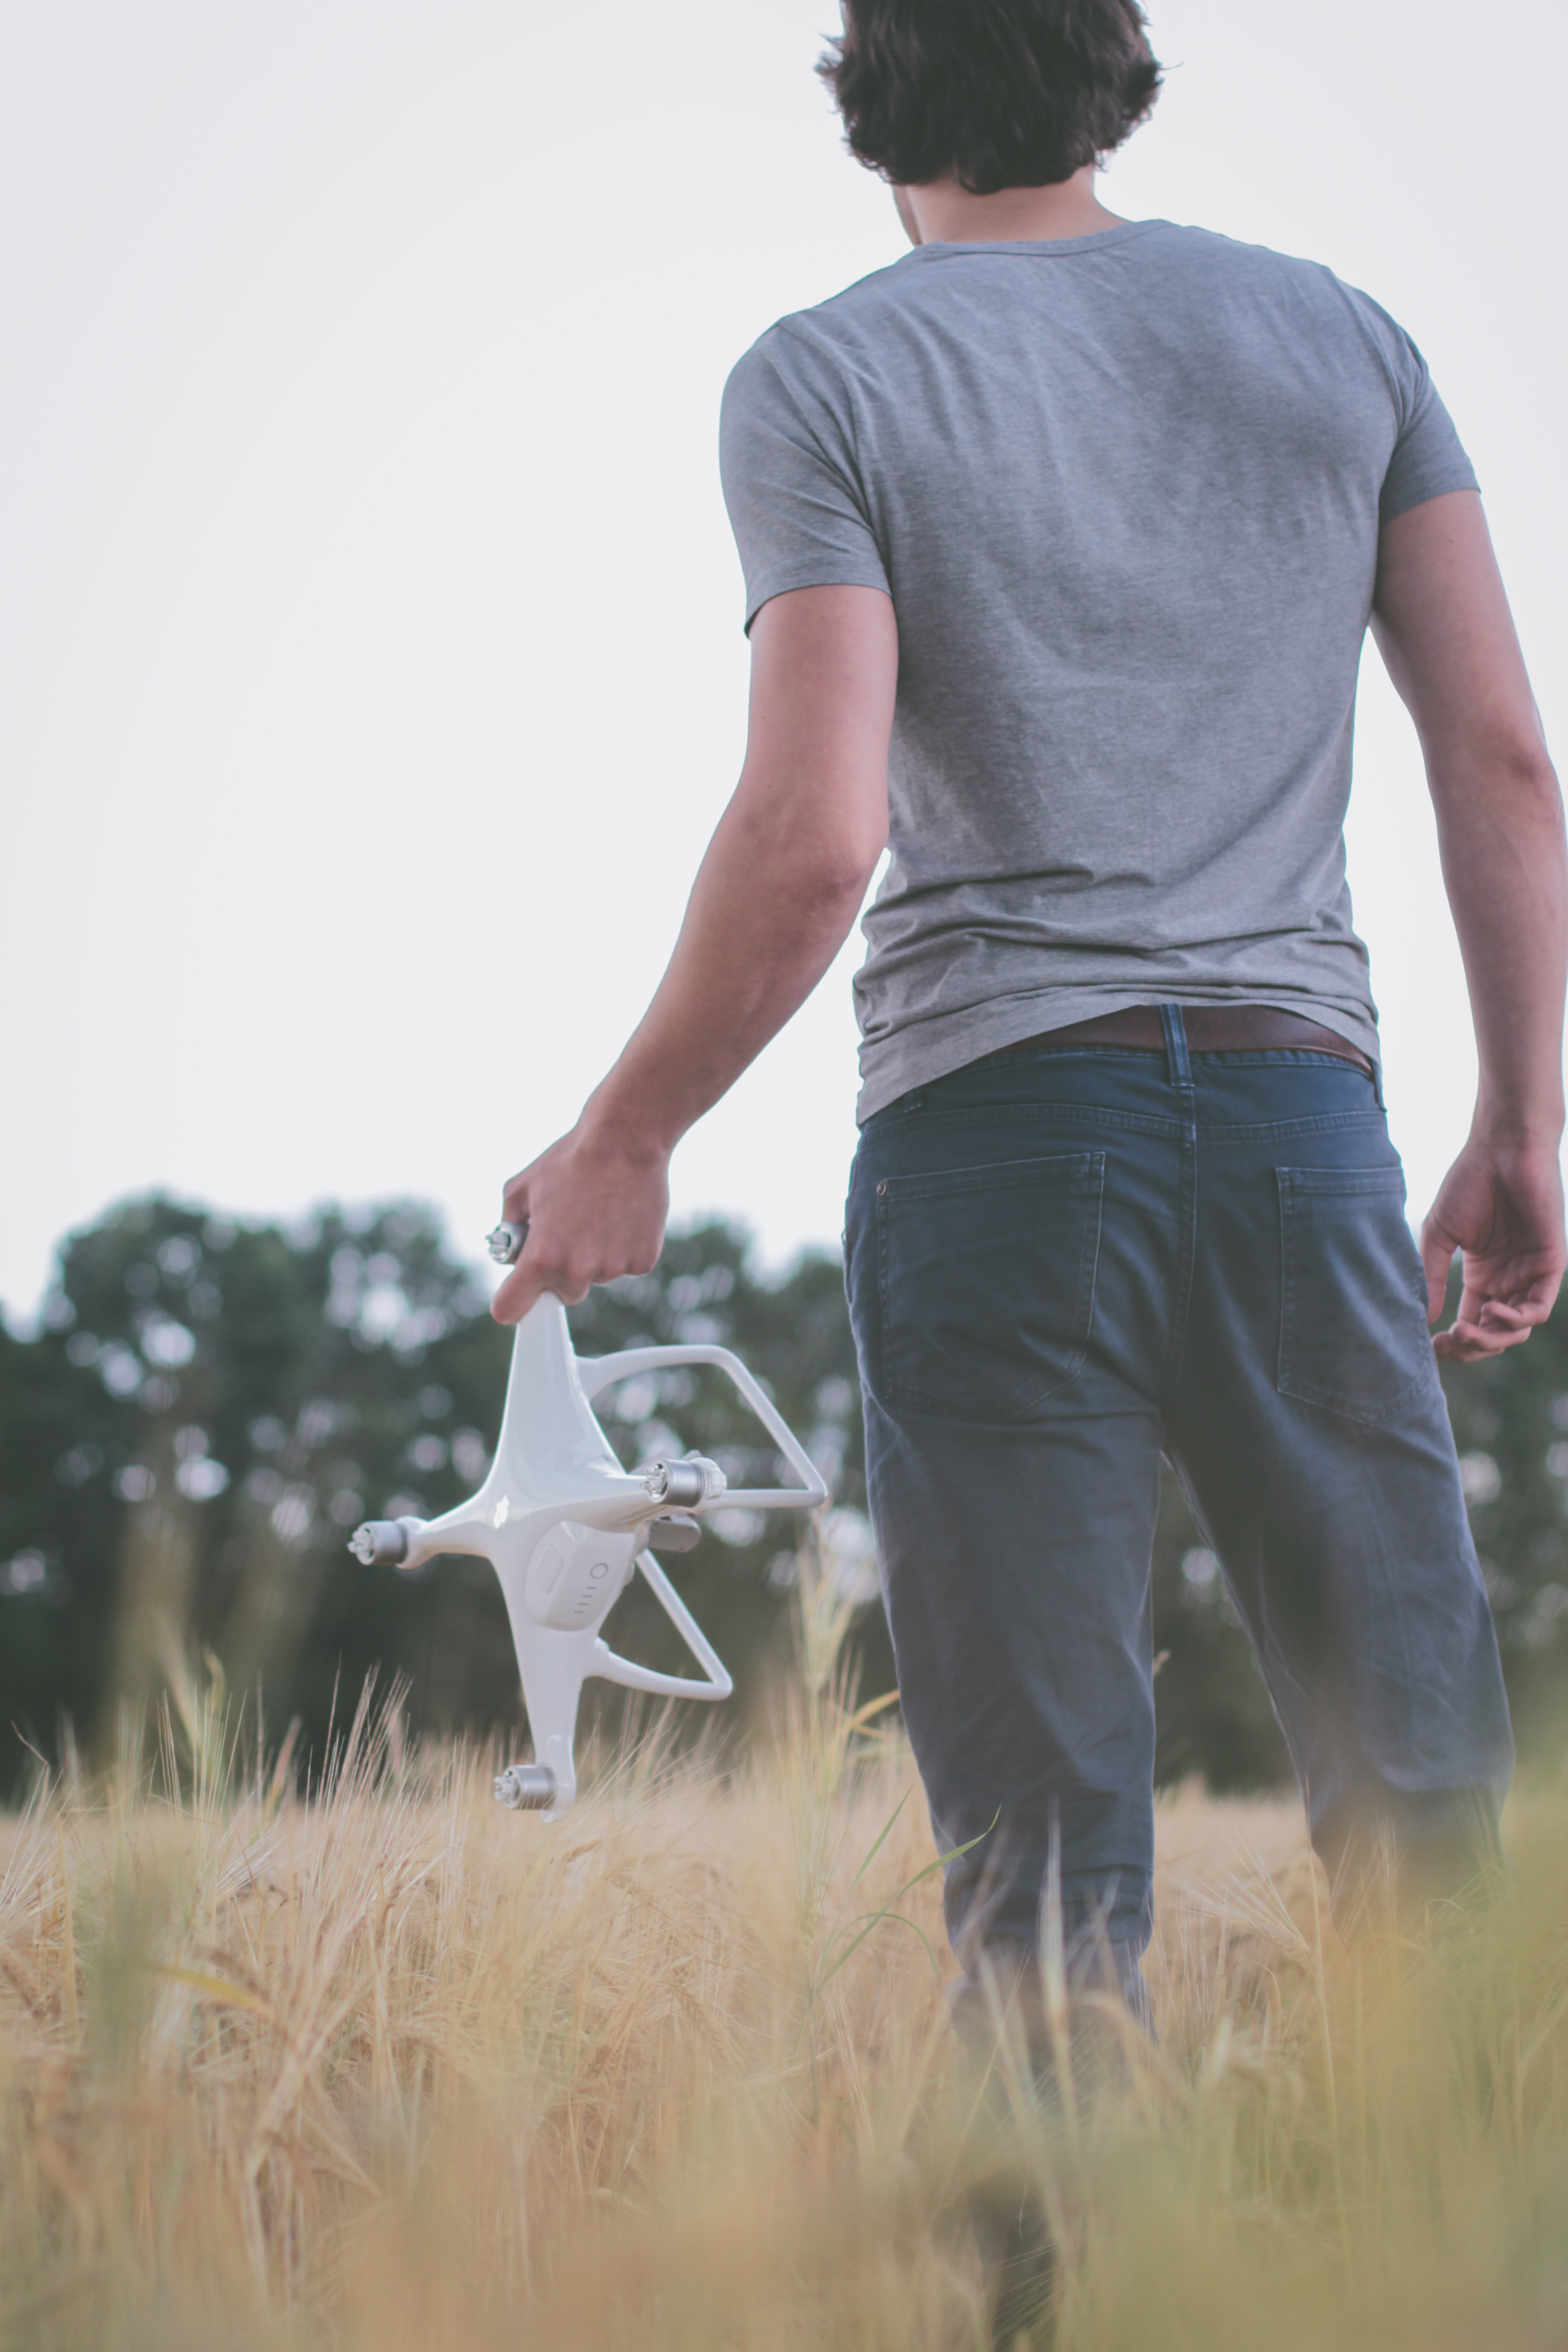 man standing on field holding white quadcopter